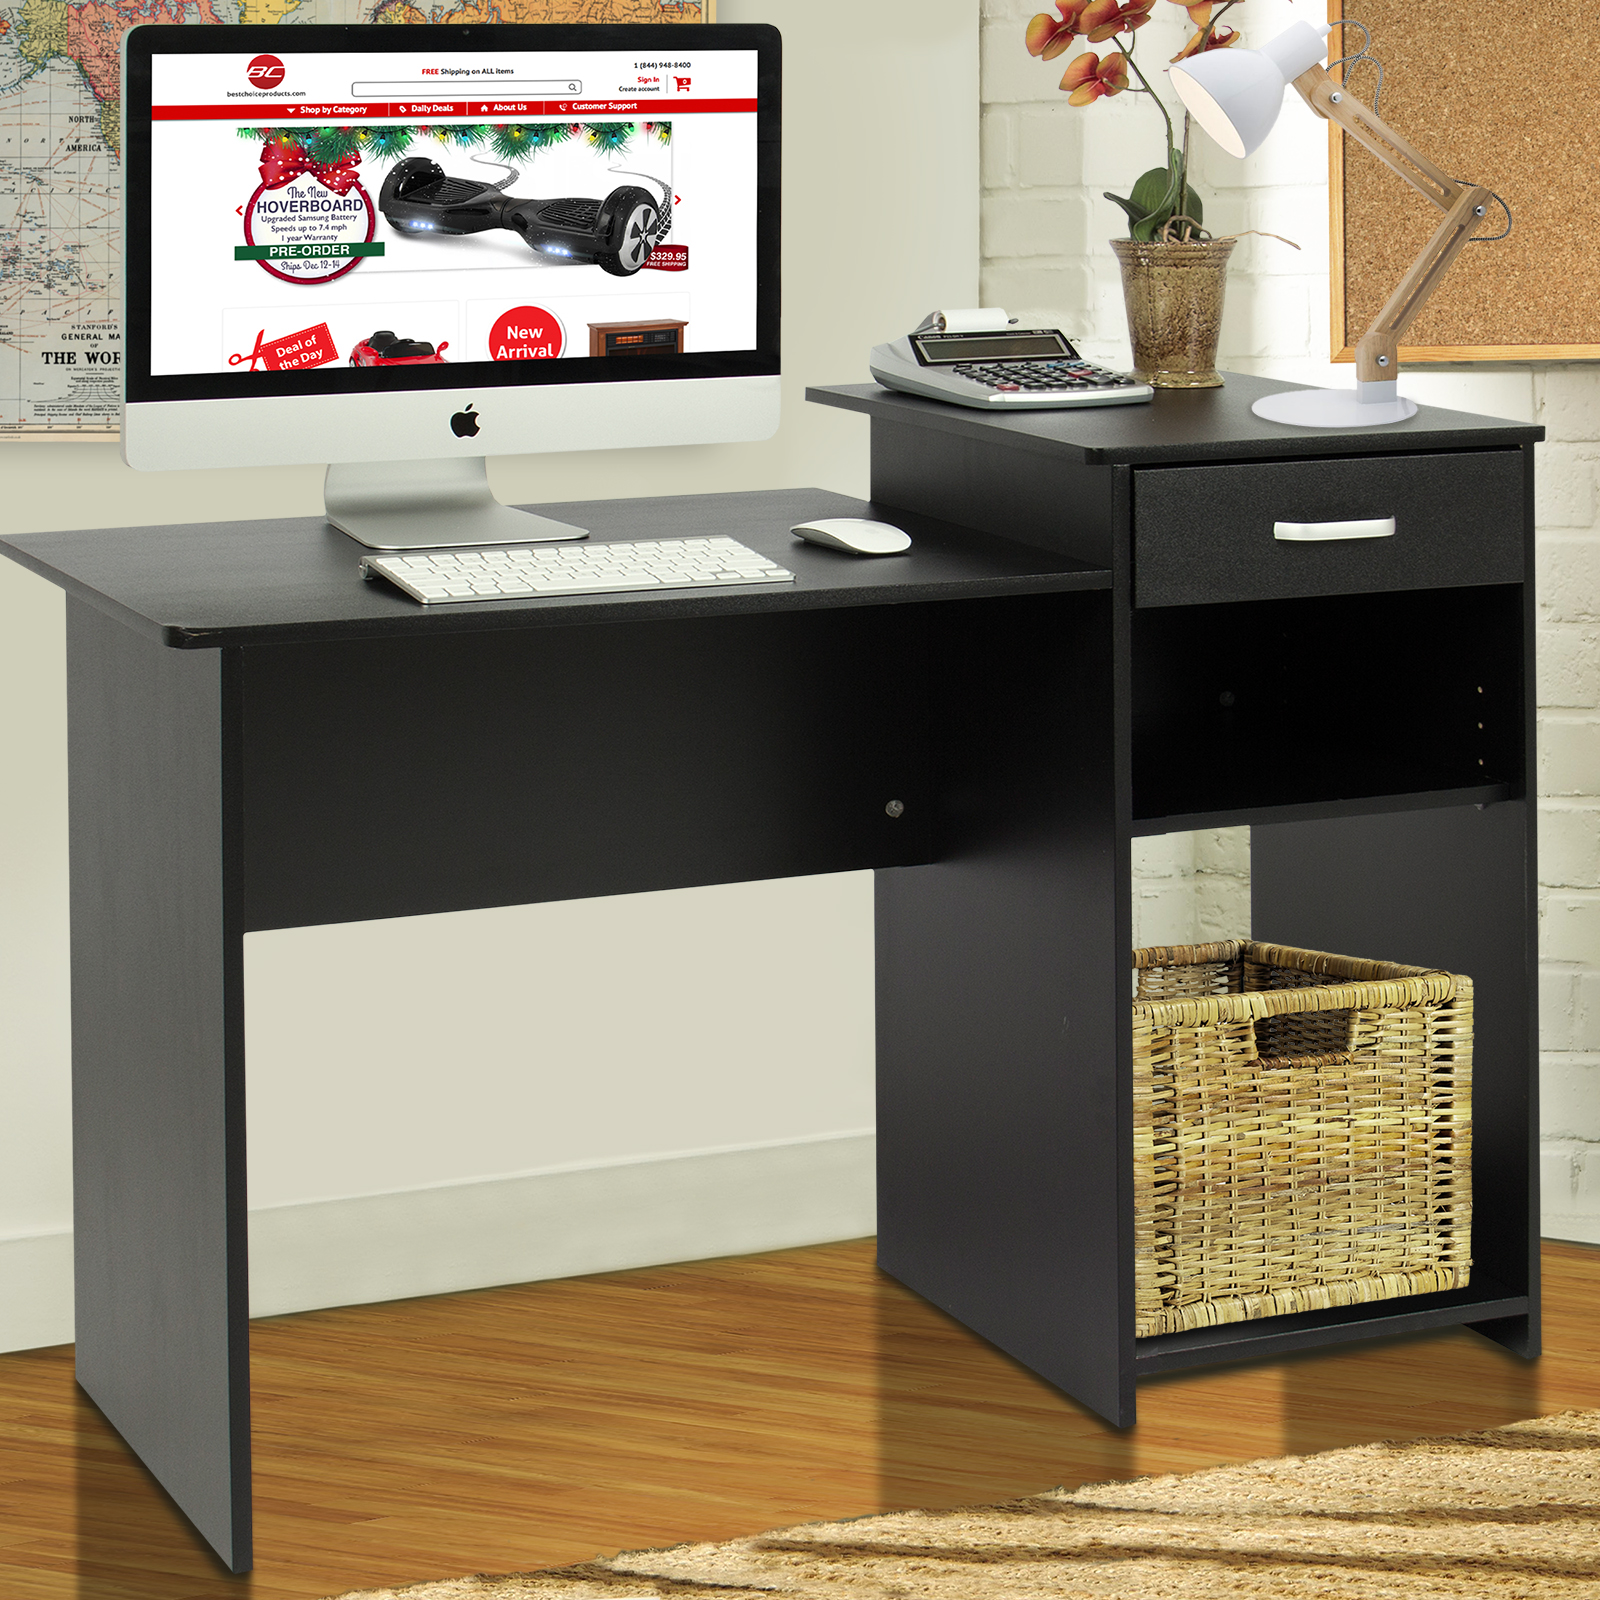 Stupendous Best Choice Products Wood Computer Desk Workstation Table For Home Office Dorm W Drawer Adjustable Shelf Black Download Free Architecture Designs Rallybritishbridgeorg